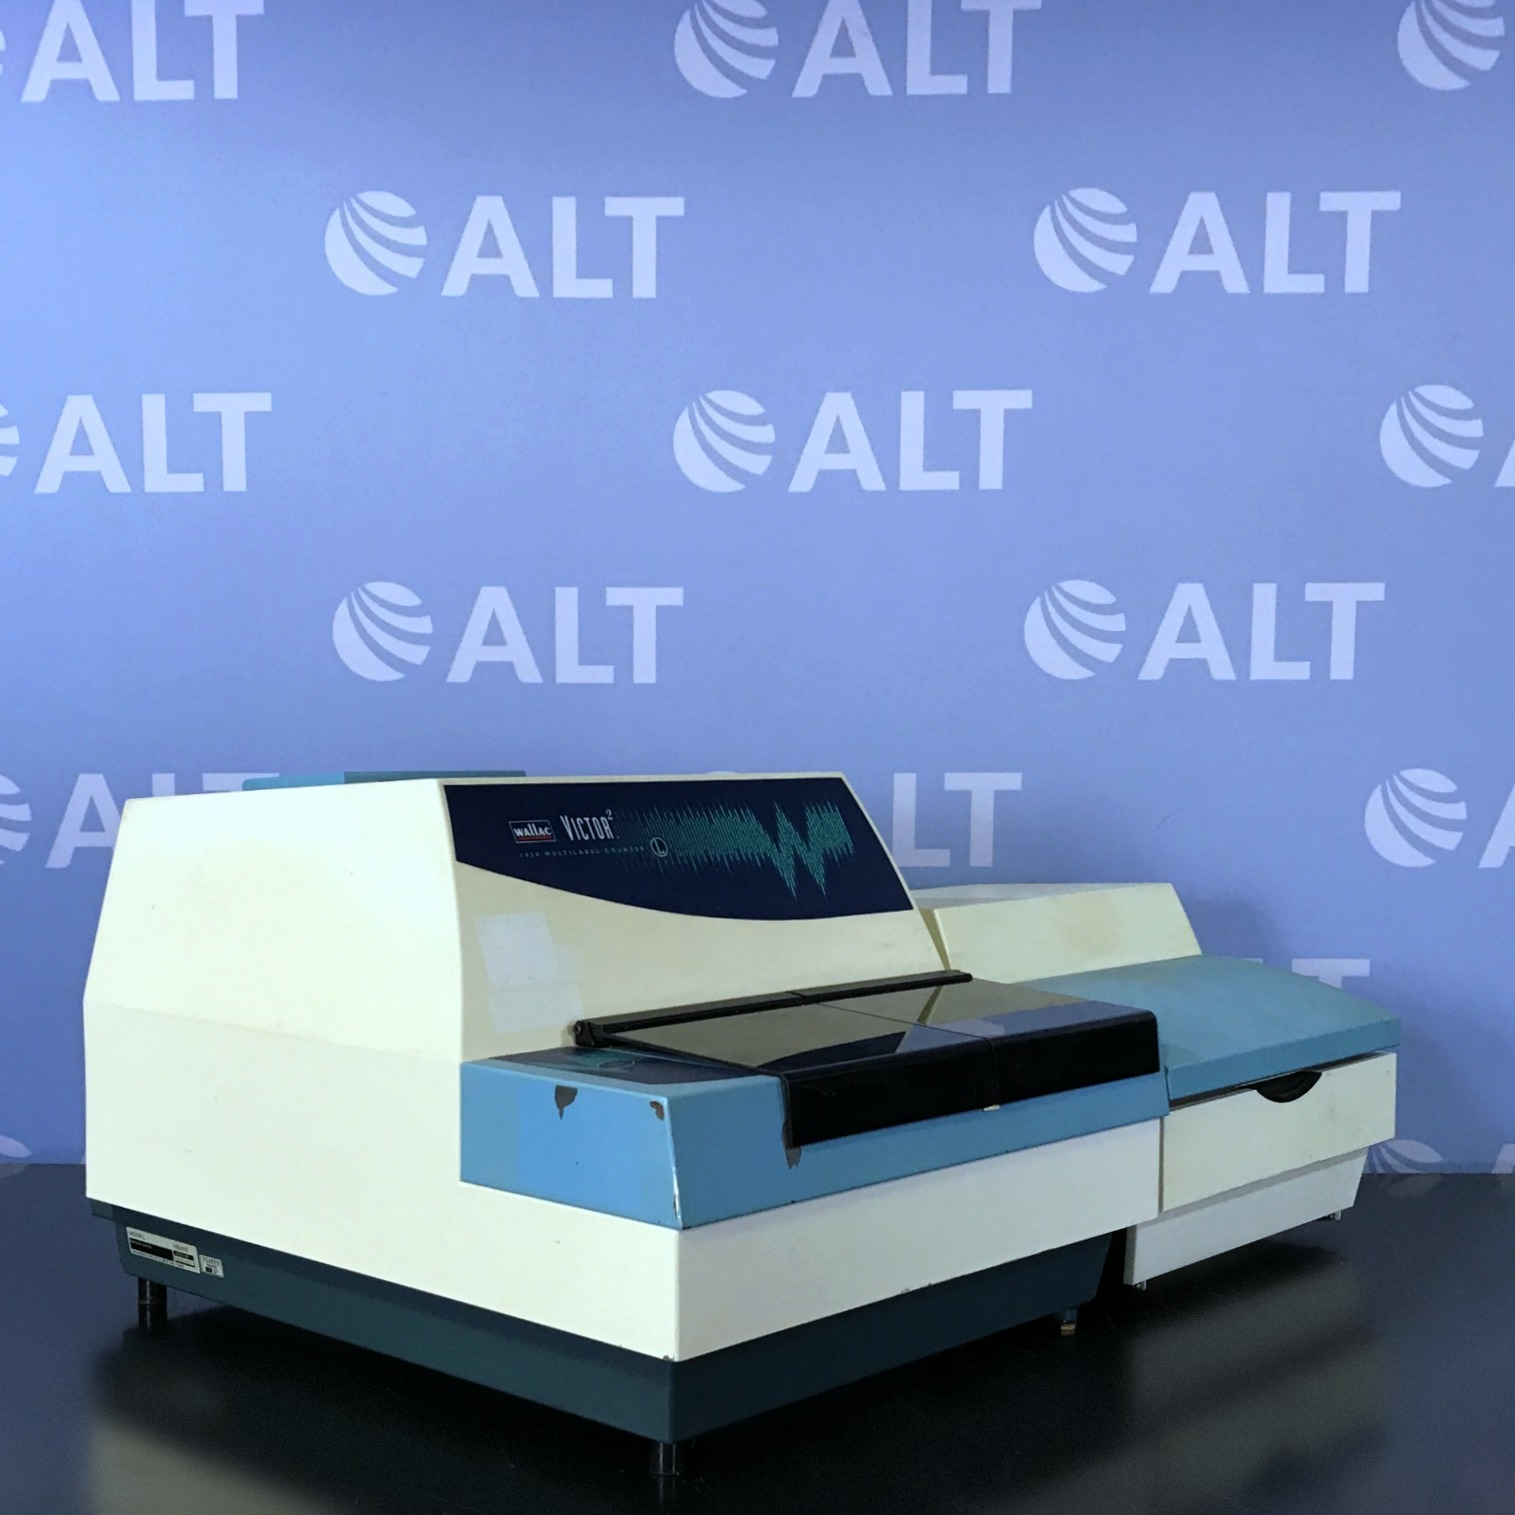 Wallac Victor2 1420-018 Multilabel Counter with Wallac Liquid Injector 1420-252 Image